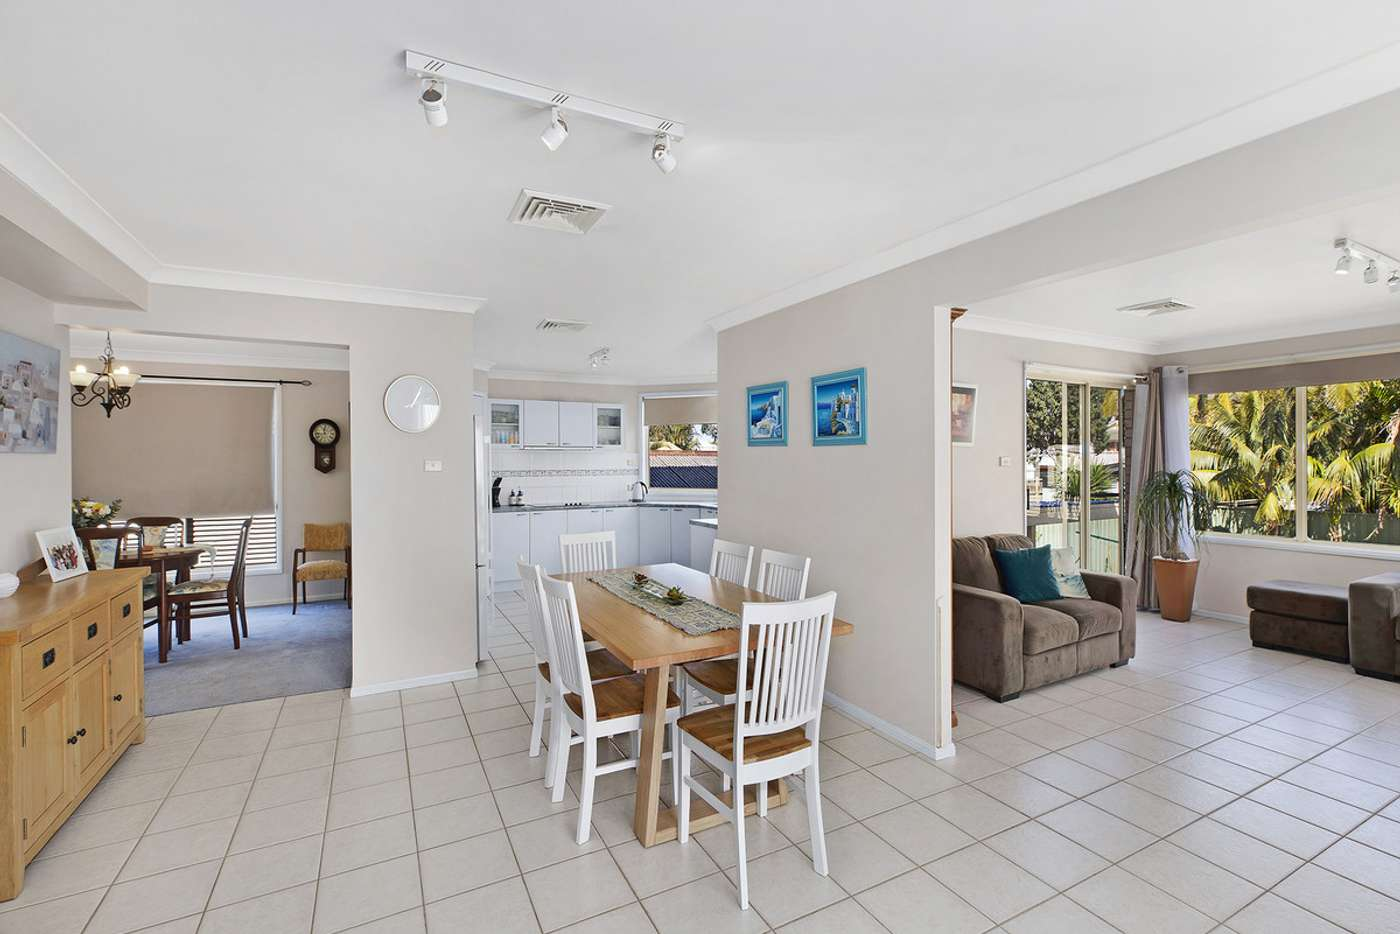 Sixth view of Homely house listing, 5 Bondi Road, The Entrance North NSW 2261